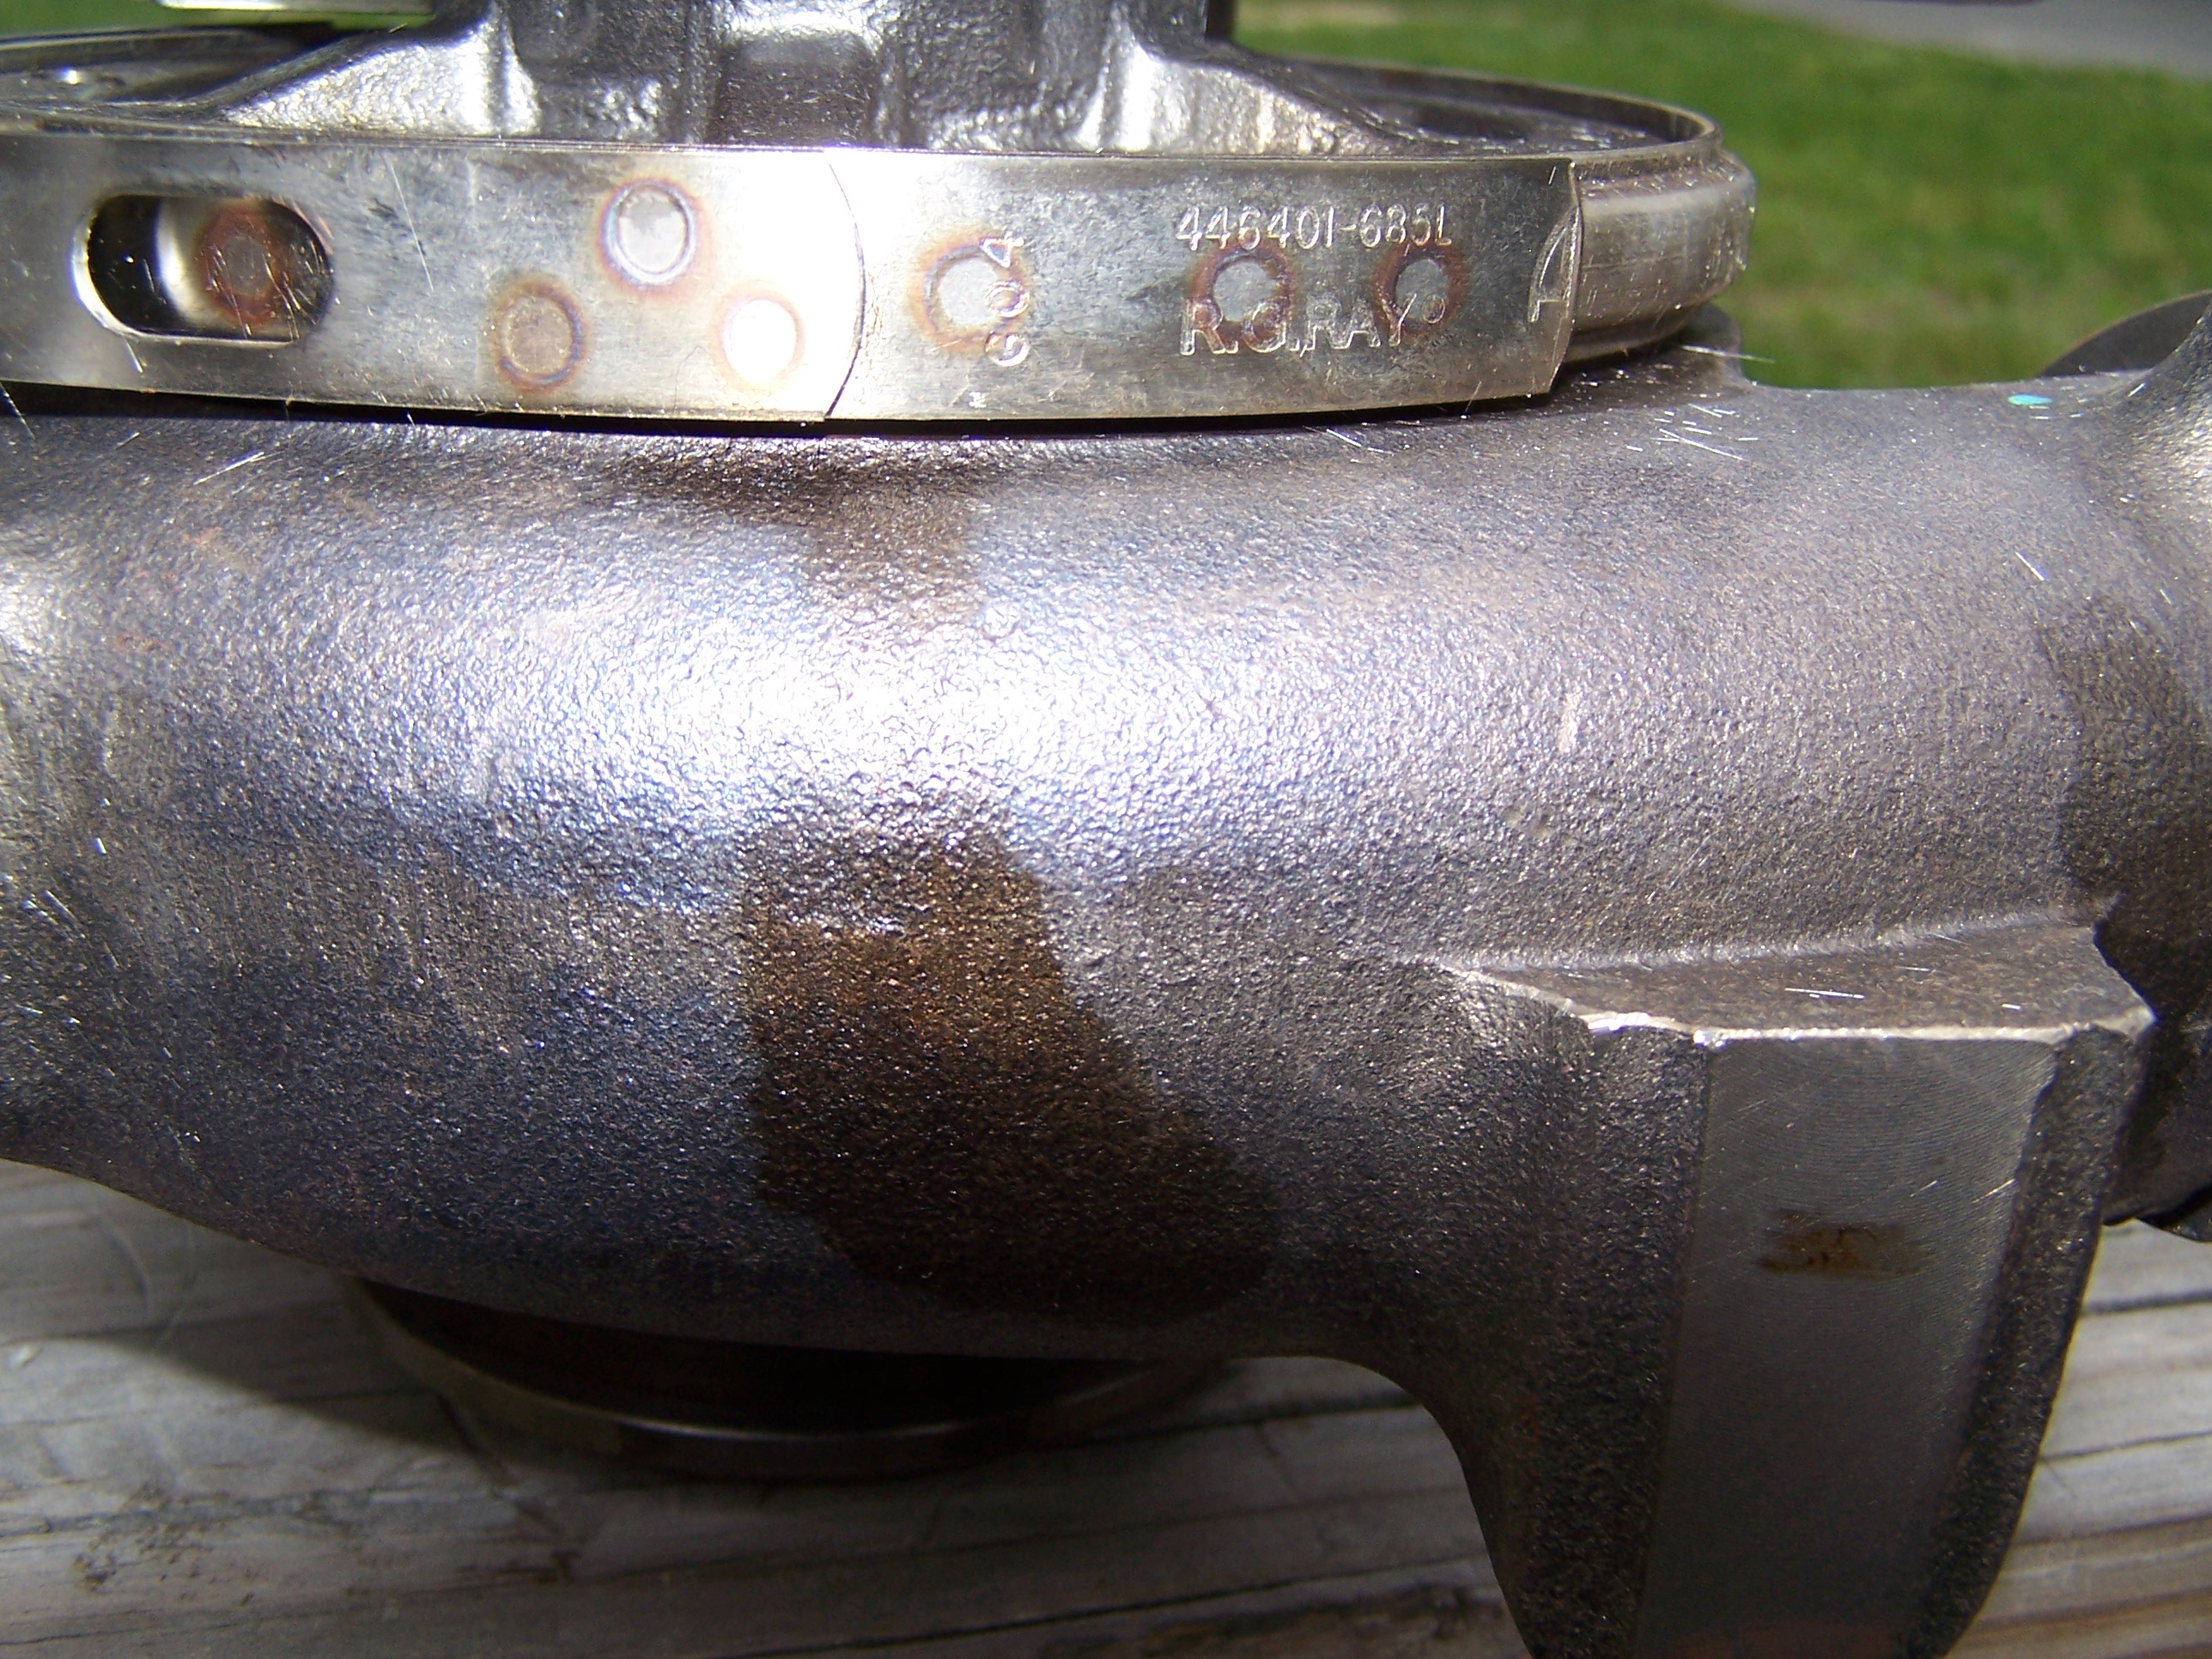 HELP! Burning oil out of tailpipe-100_1770.jpg